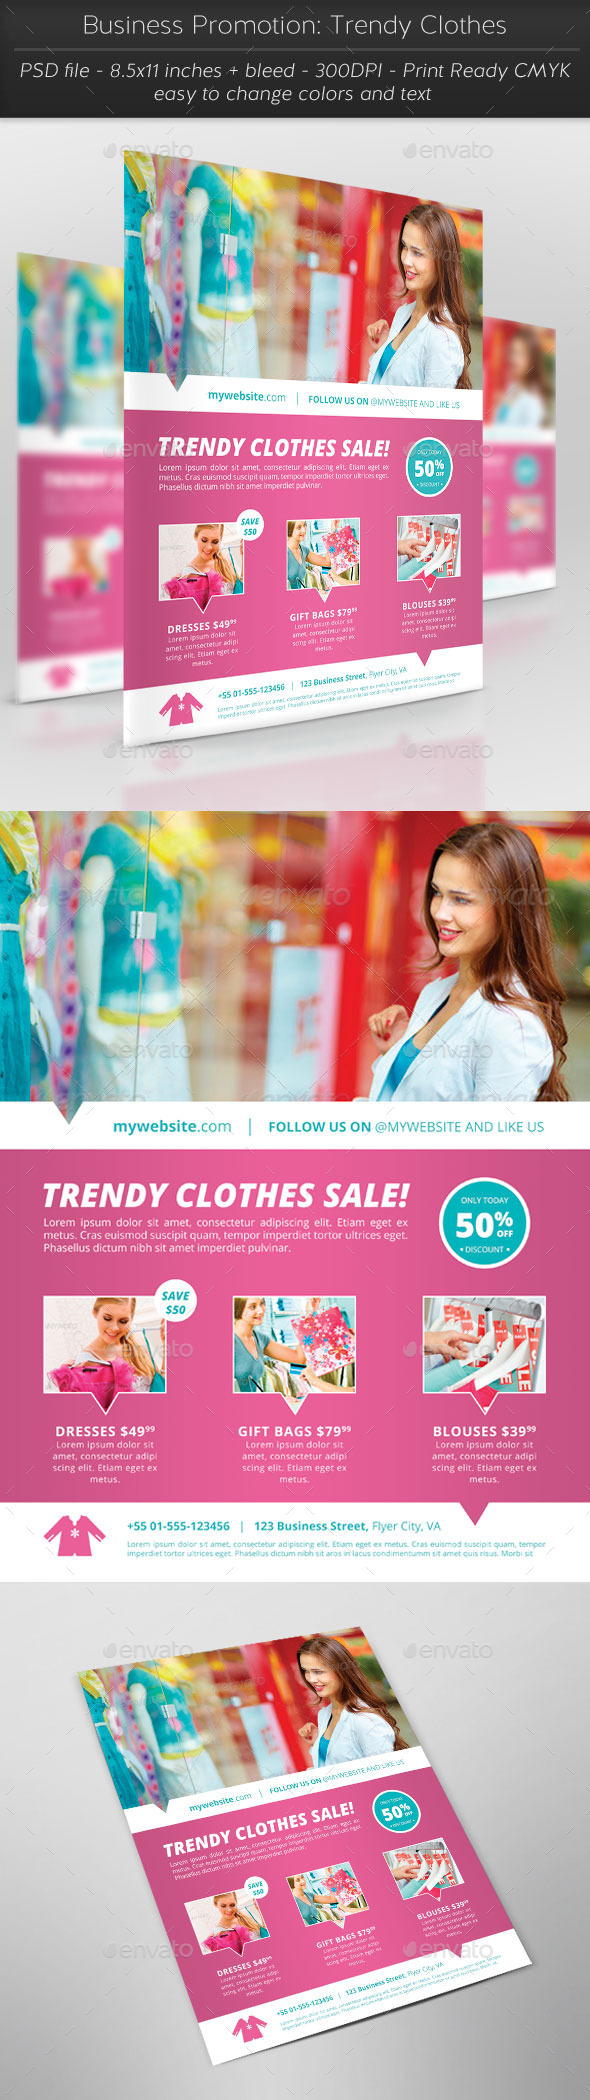 GraphicRiver Business Promotion Trendy Clothes 11569302